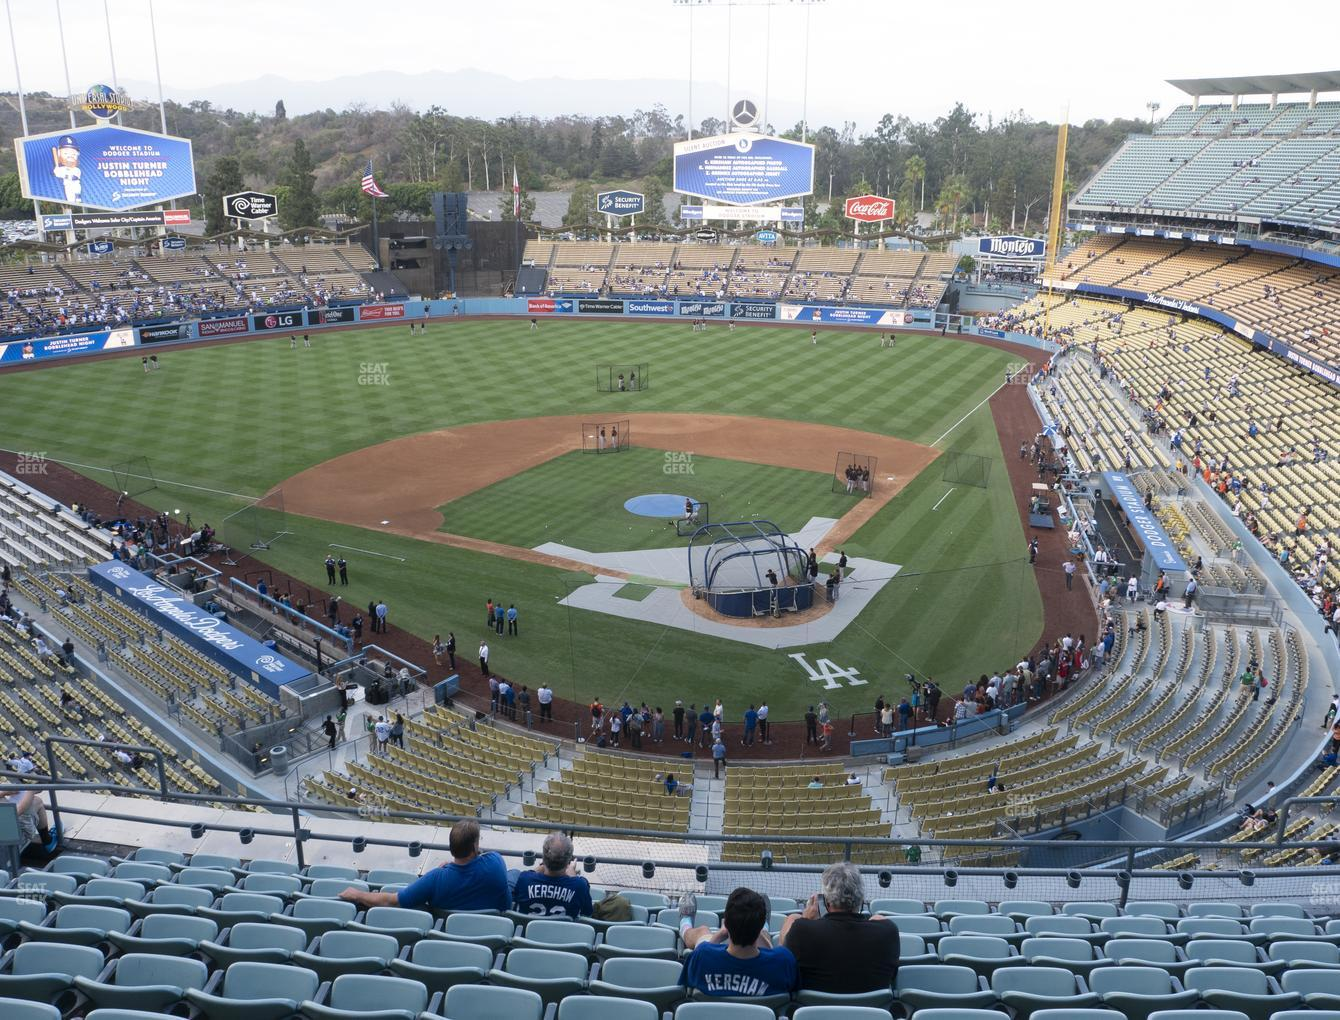 Los Angeles Dodgers at Dodger Stadium Reserve 5 View